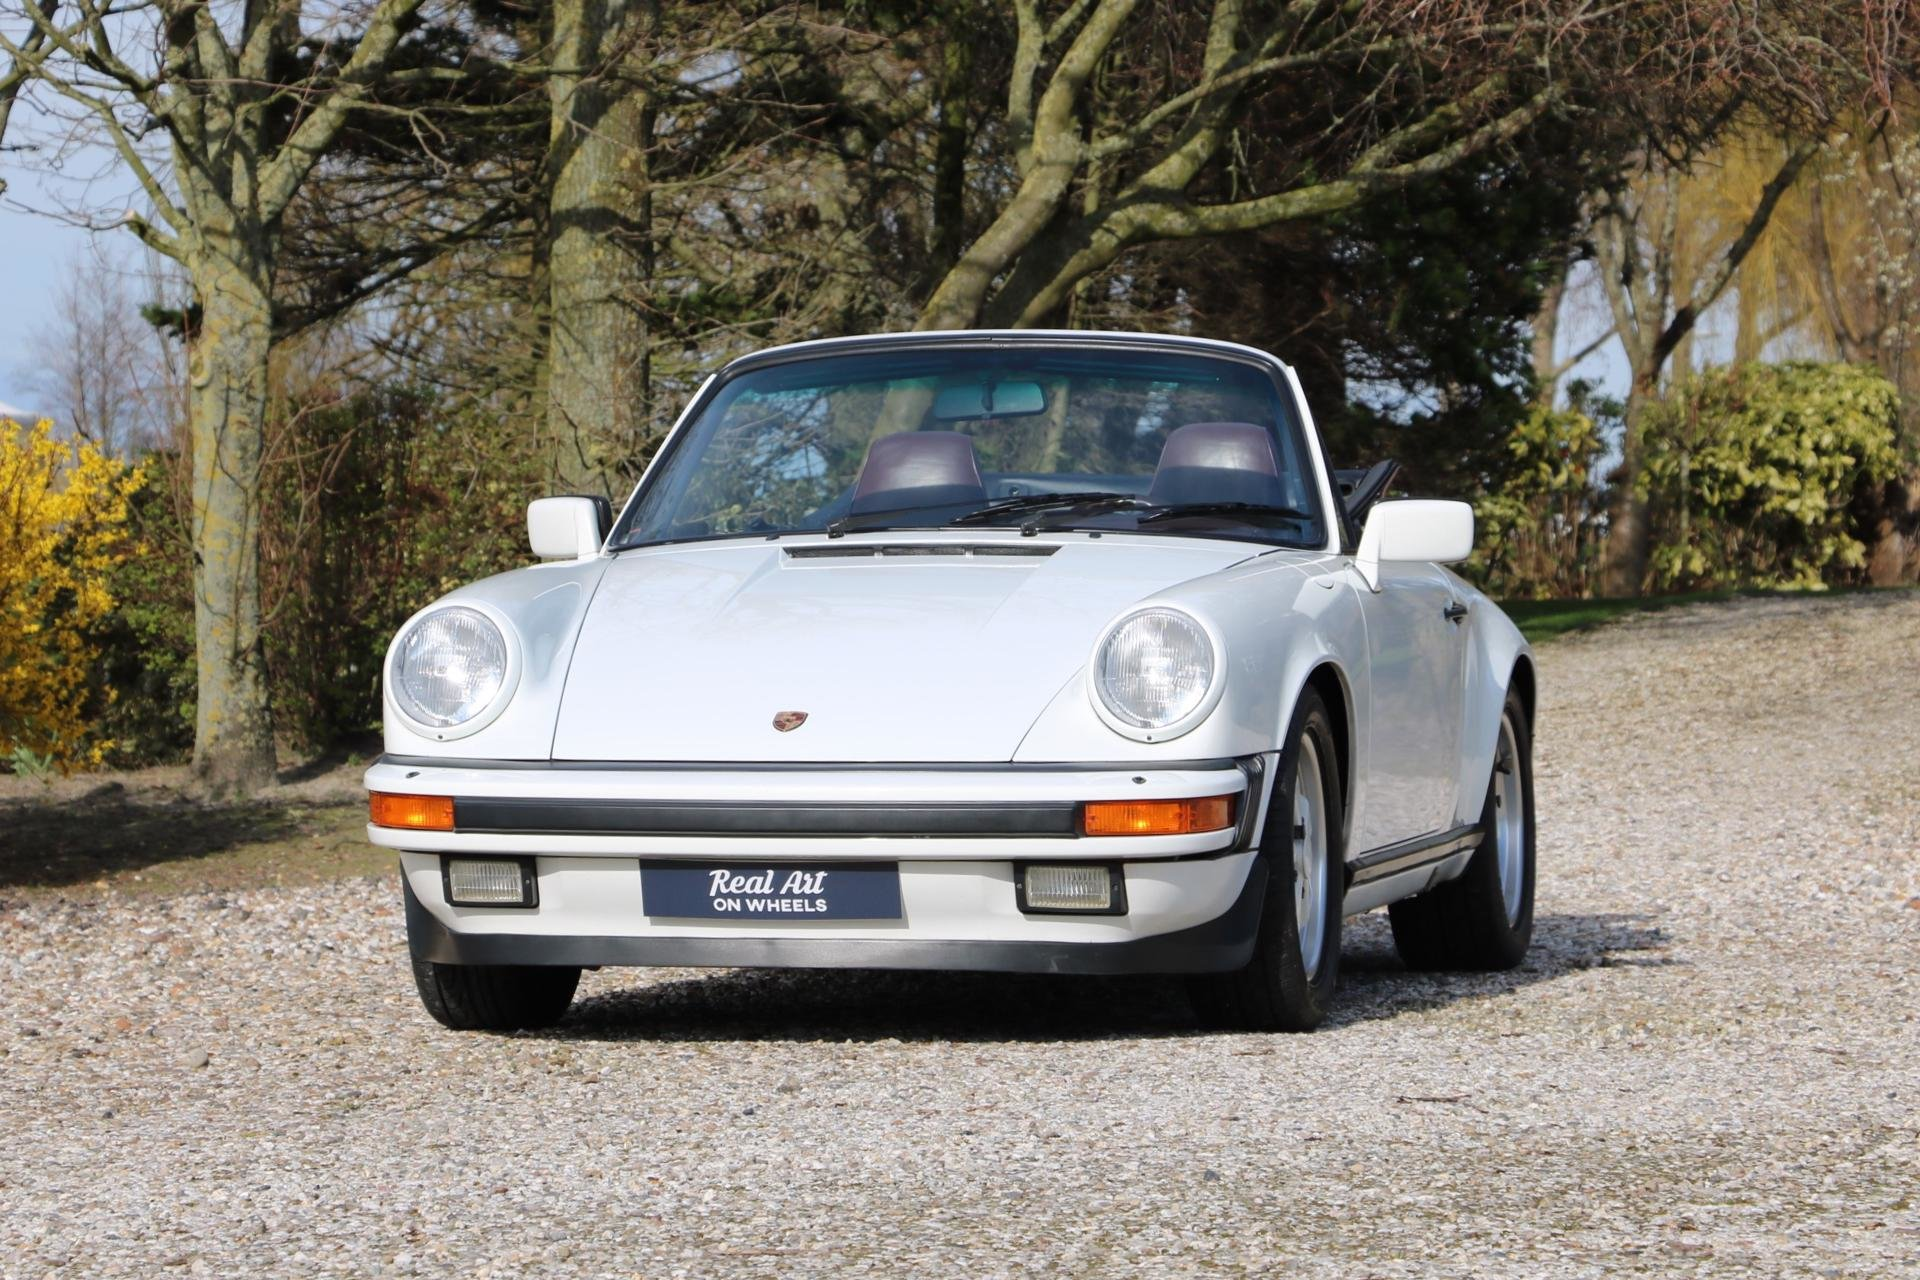 Real Art on Wheels | Porsche 911 Carrera 3.2 Cabriolet